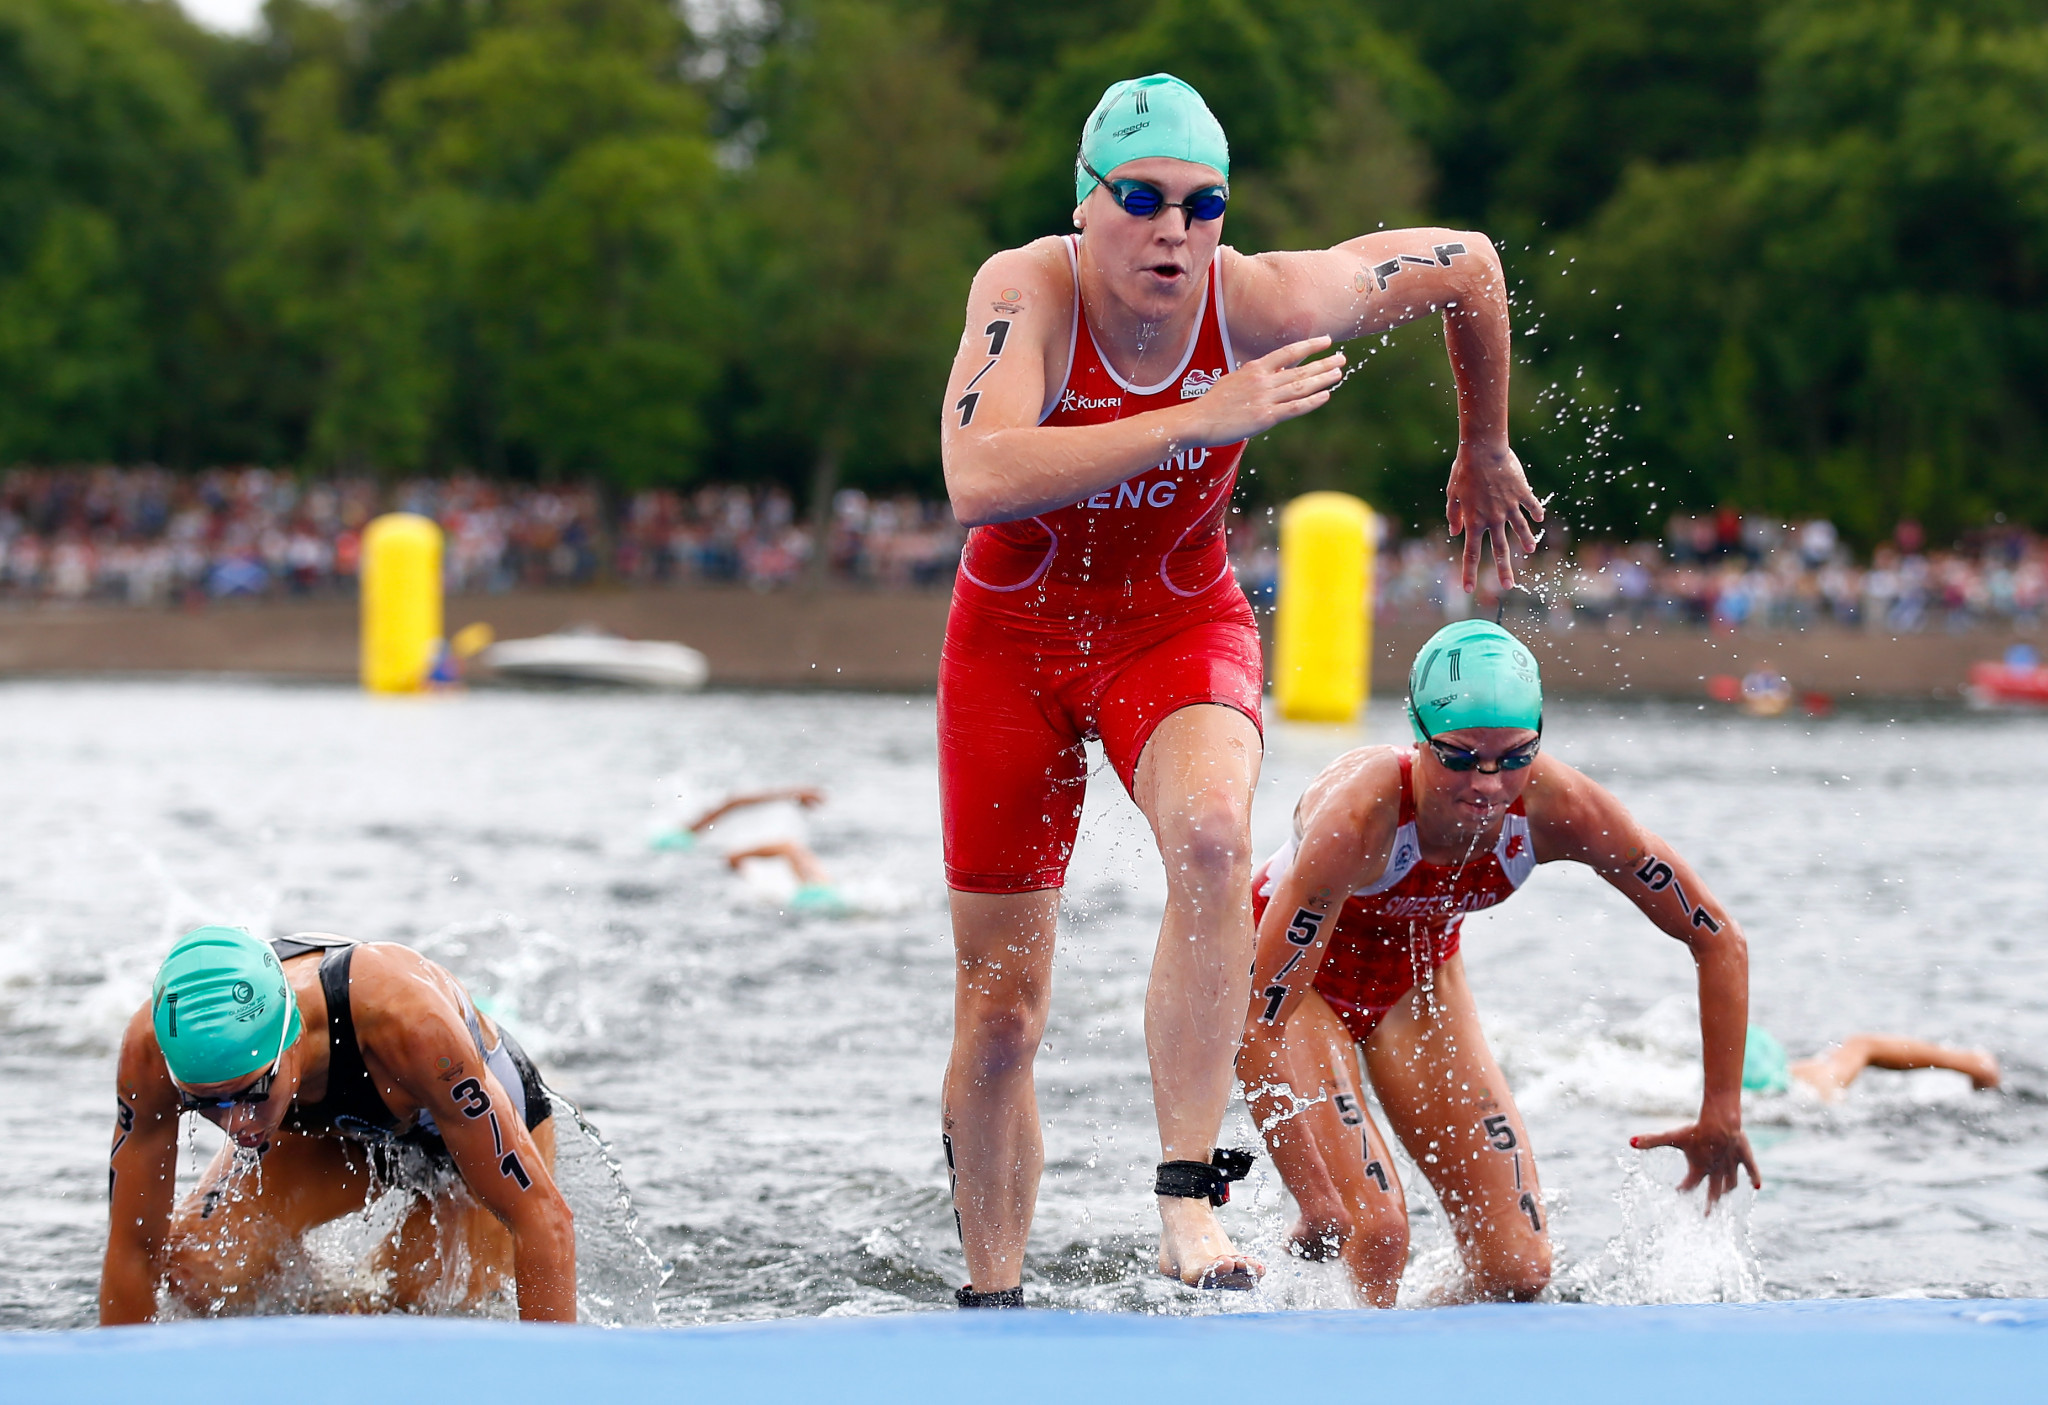 Triathlon will also be part of the Glasgow 2018 European Championships ©Getty Images